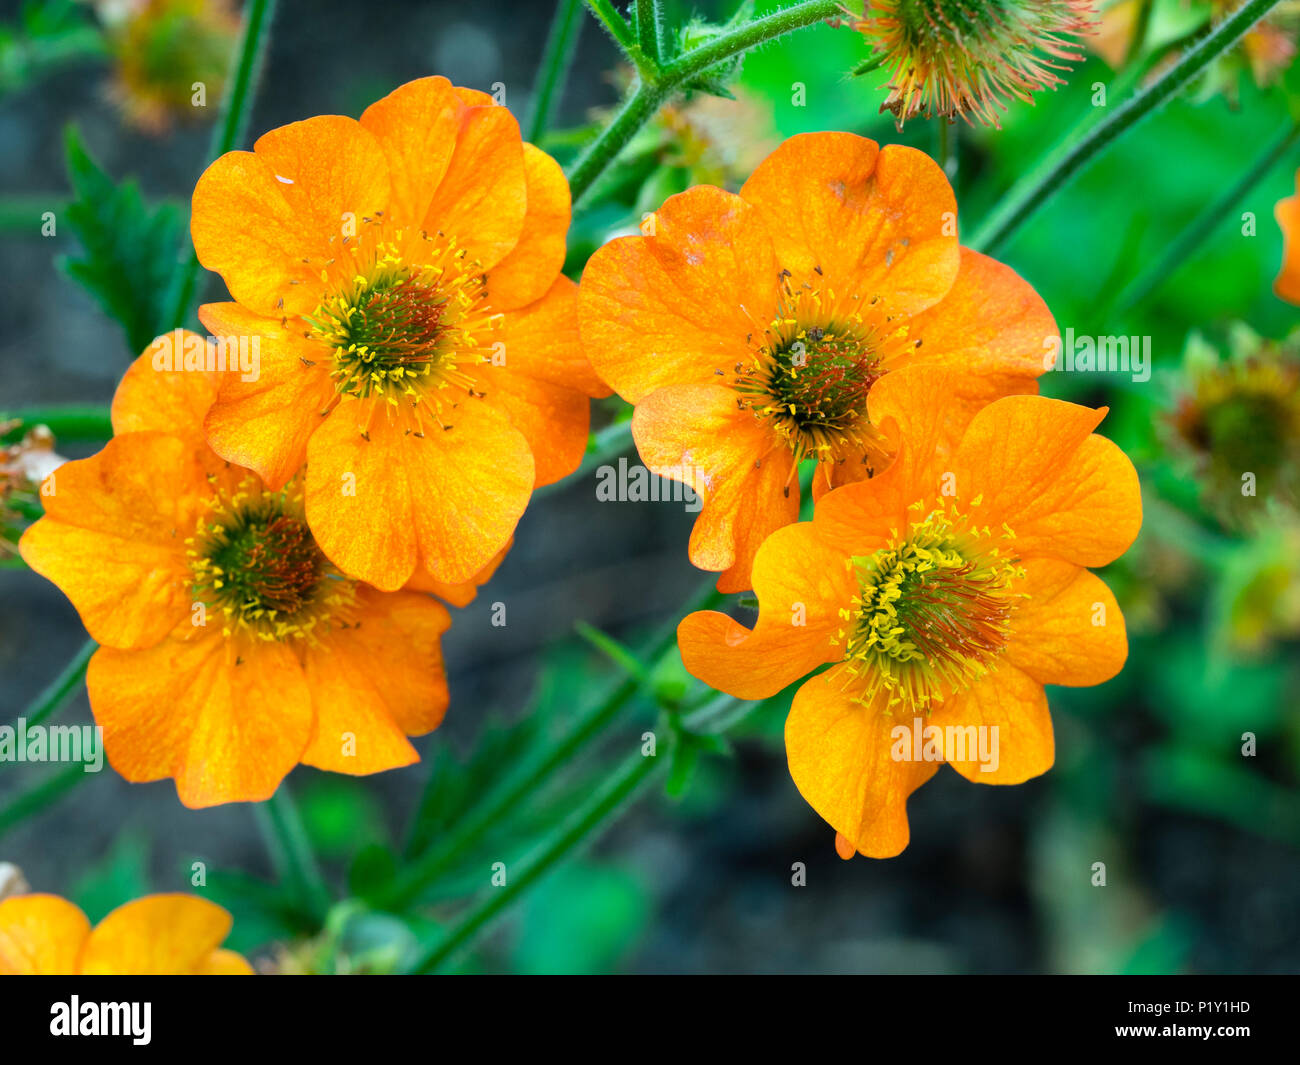 Orange summer flowers of the herbaceous perennial Avens, Geum 'Totally Tangerine' - Stock Image